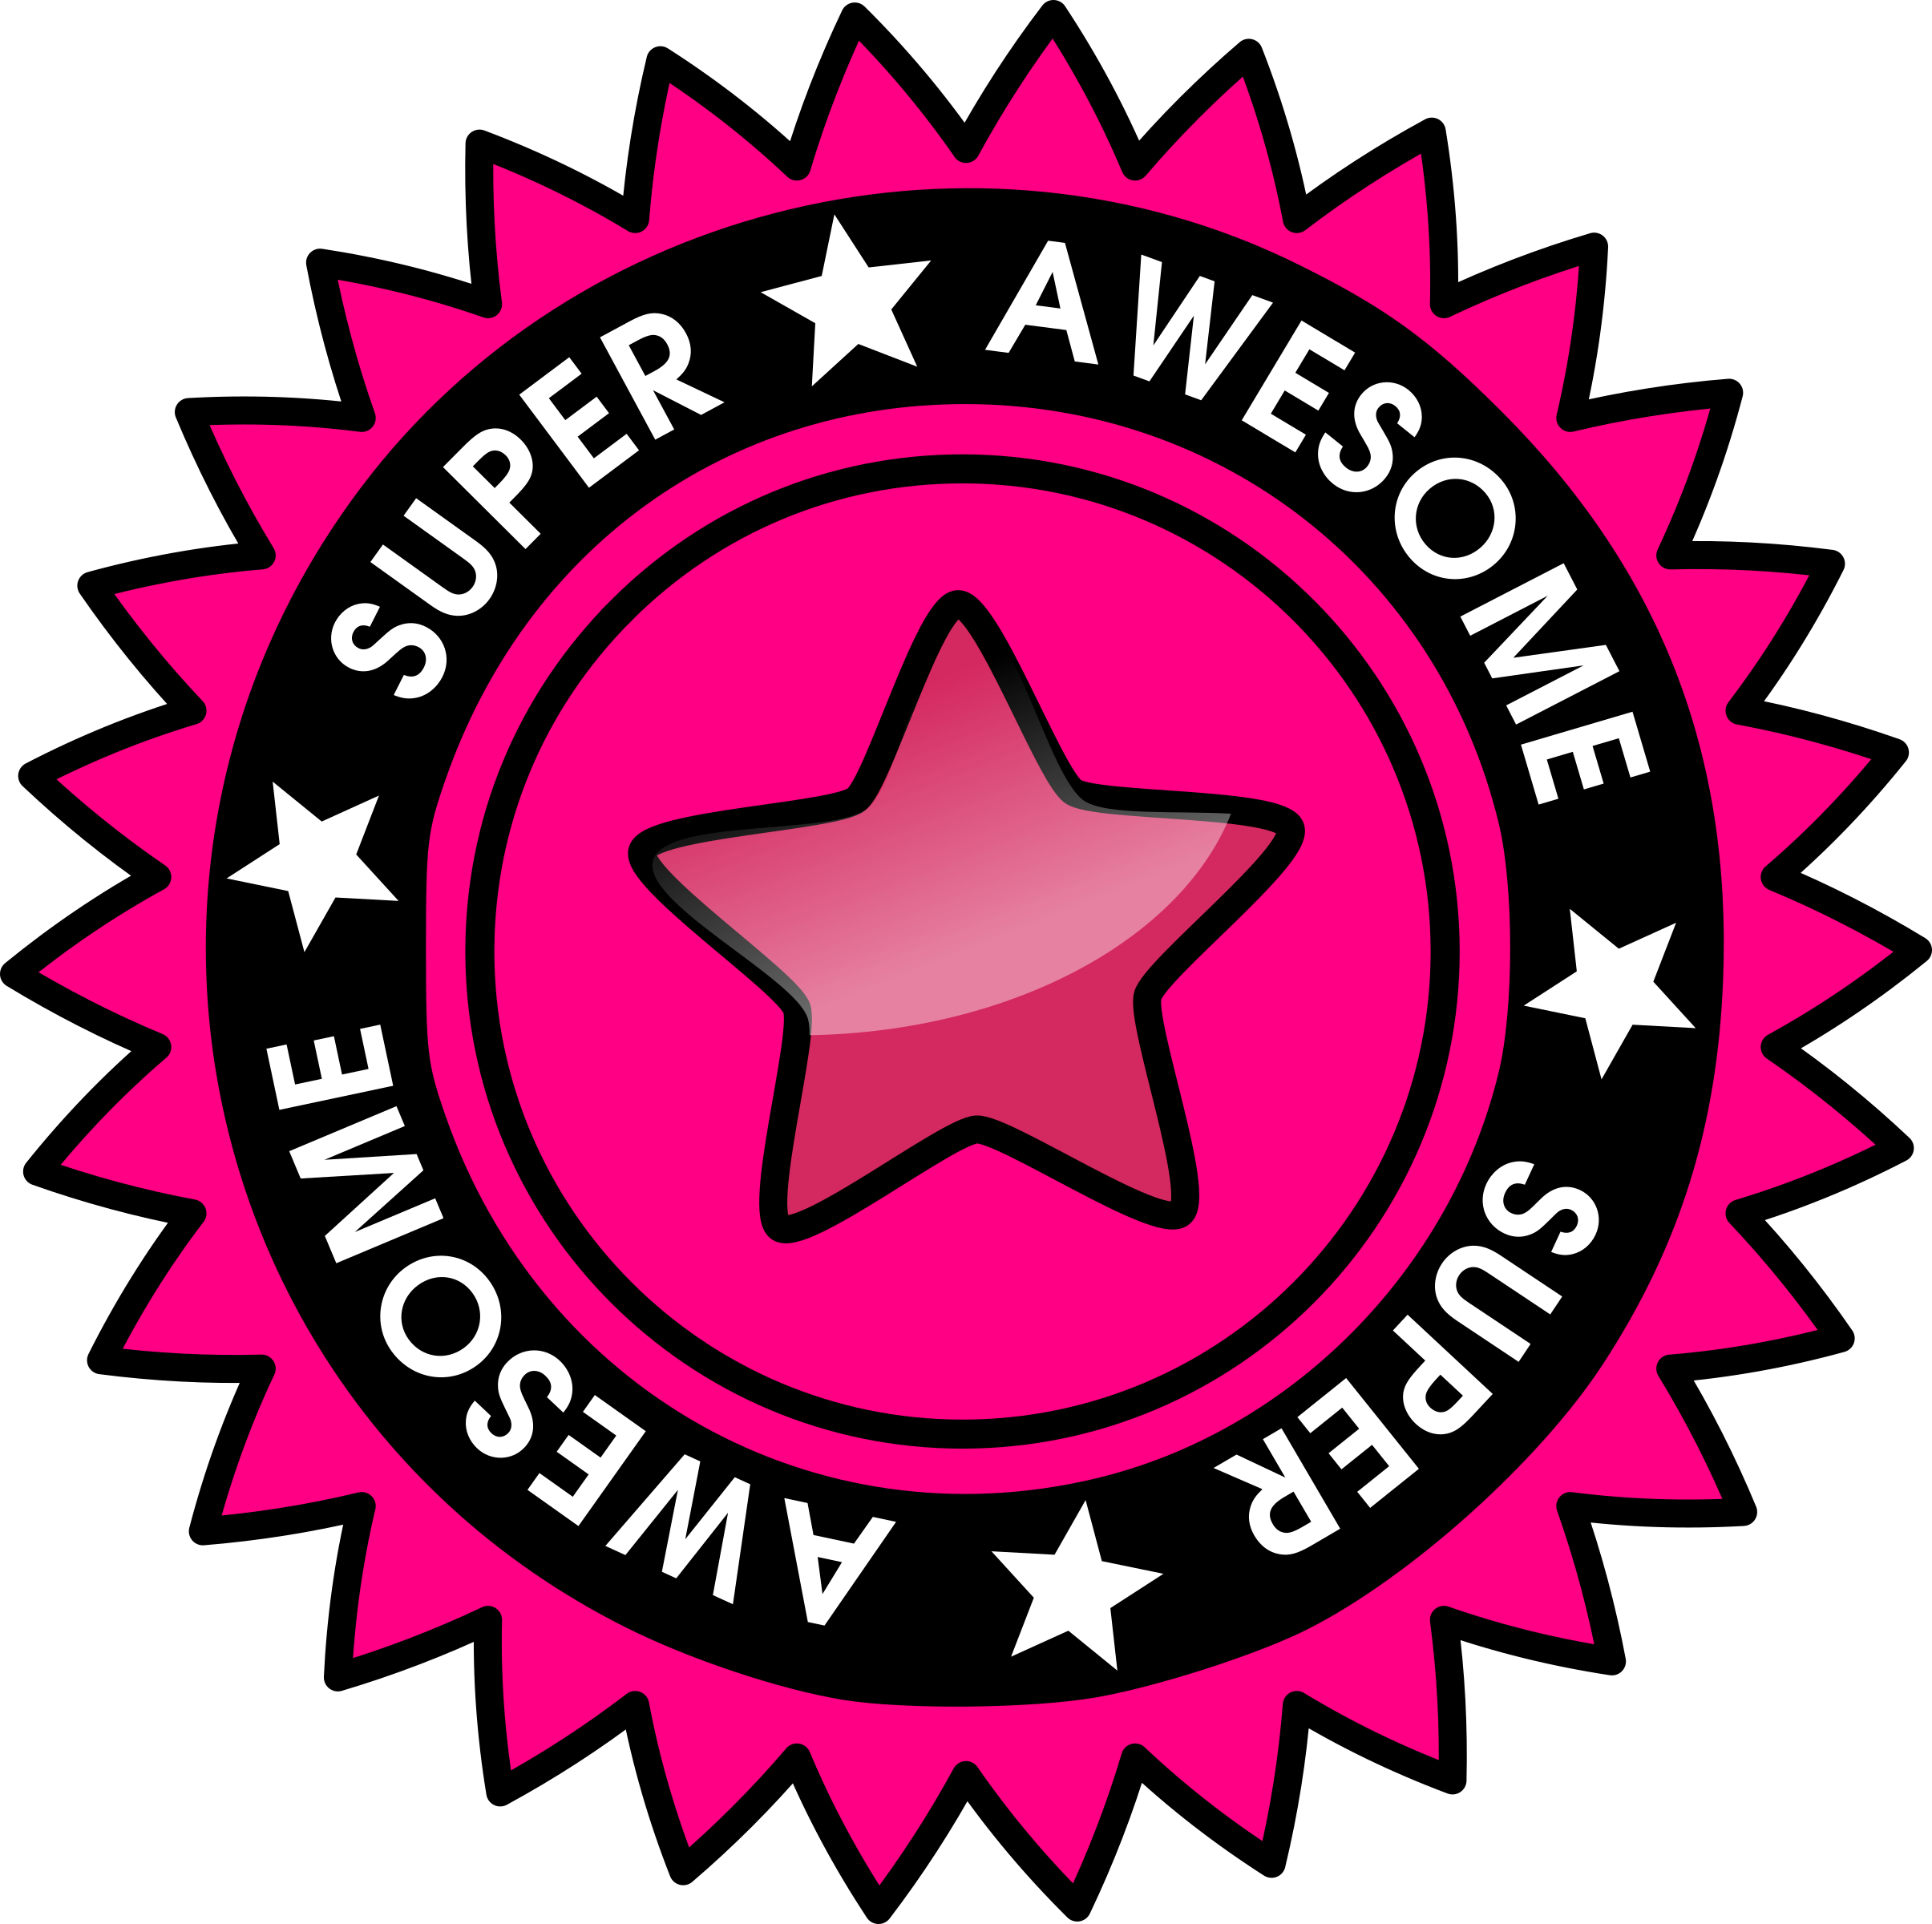 Your awesome clipart image